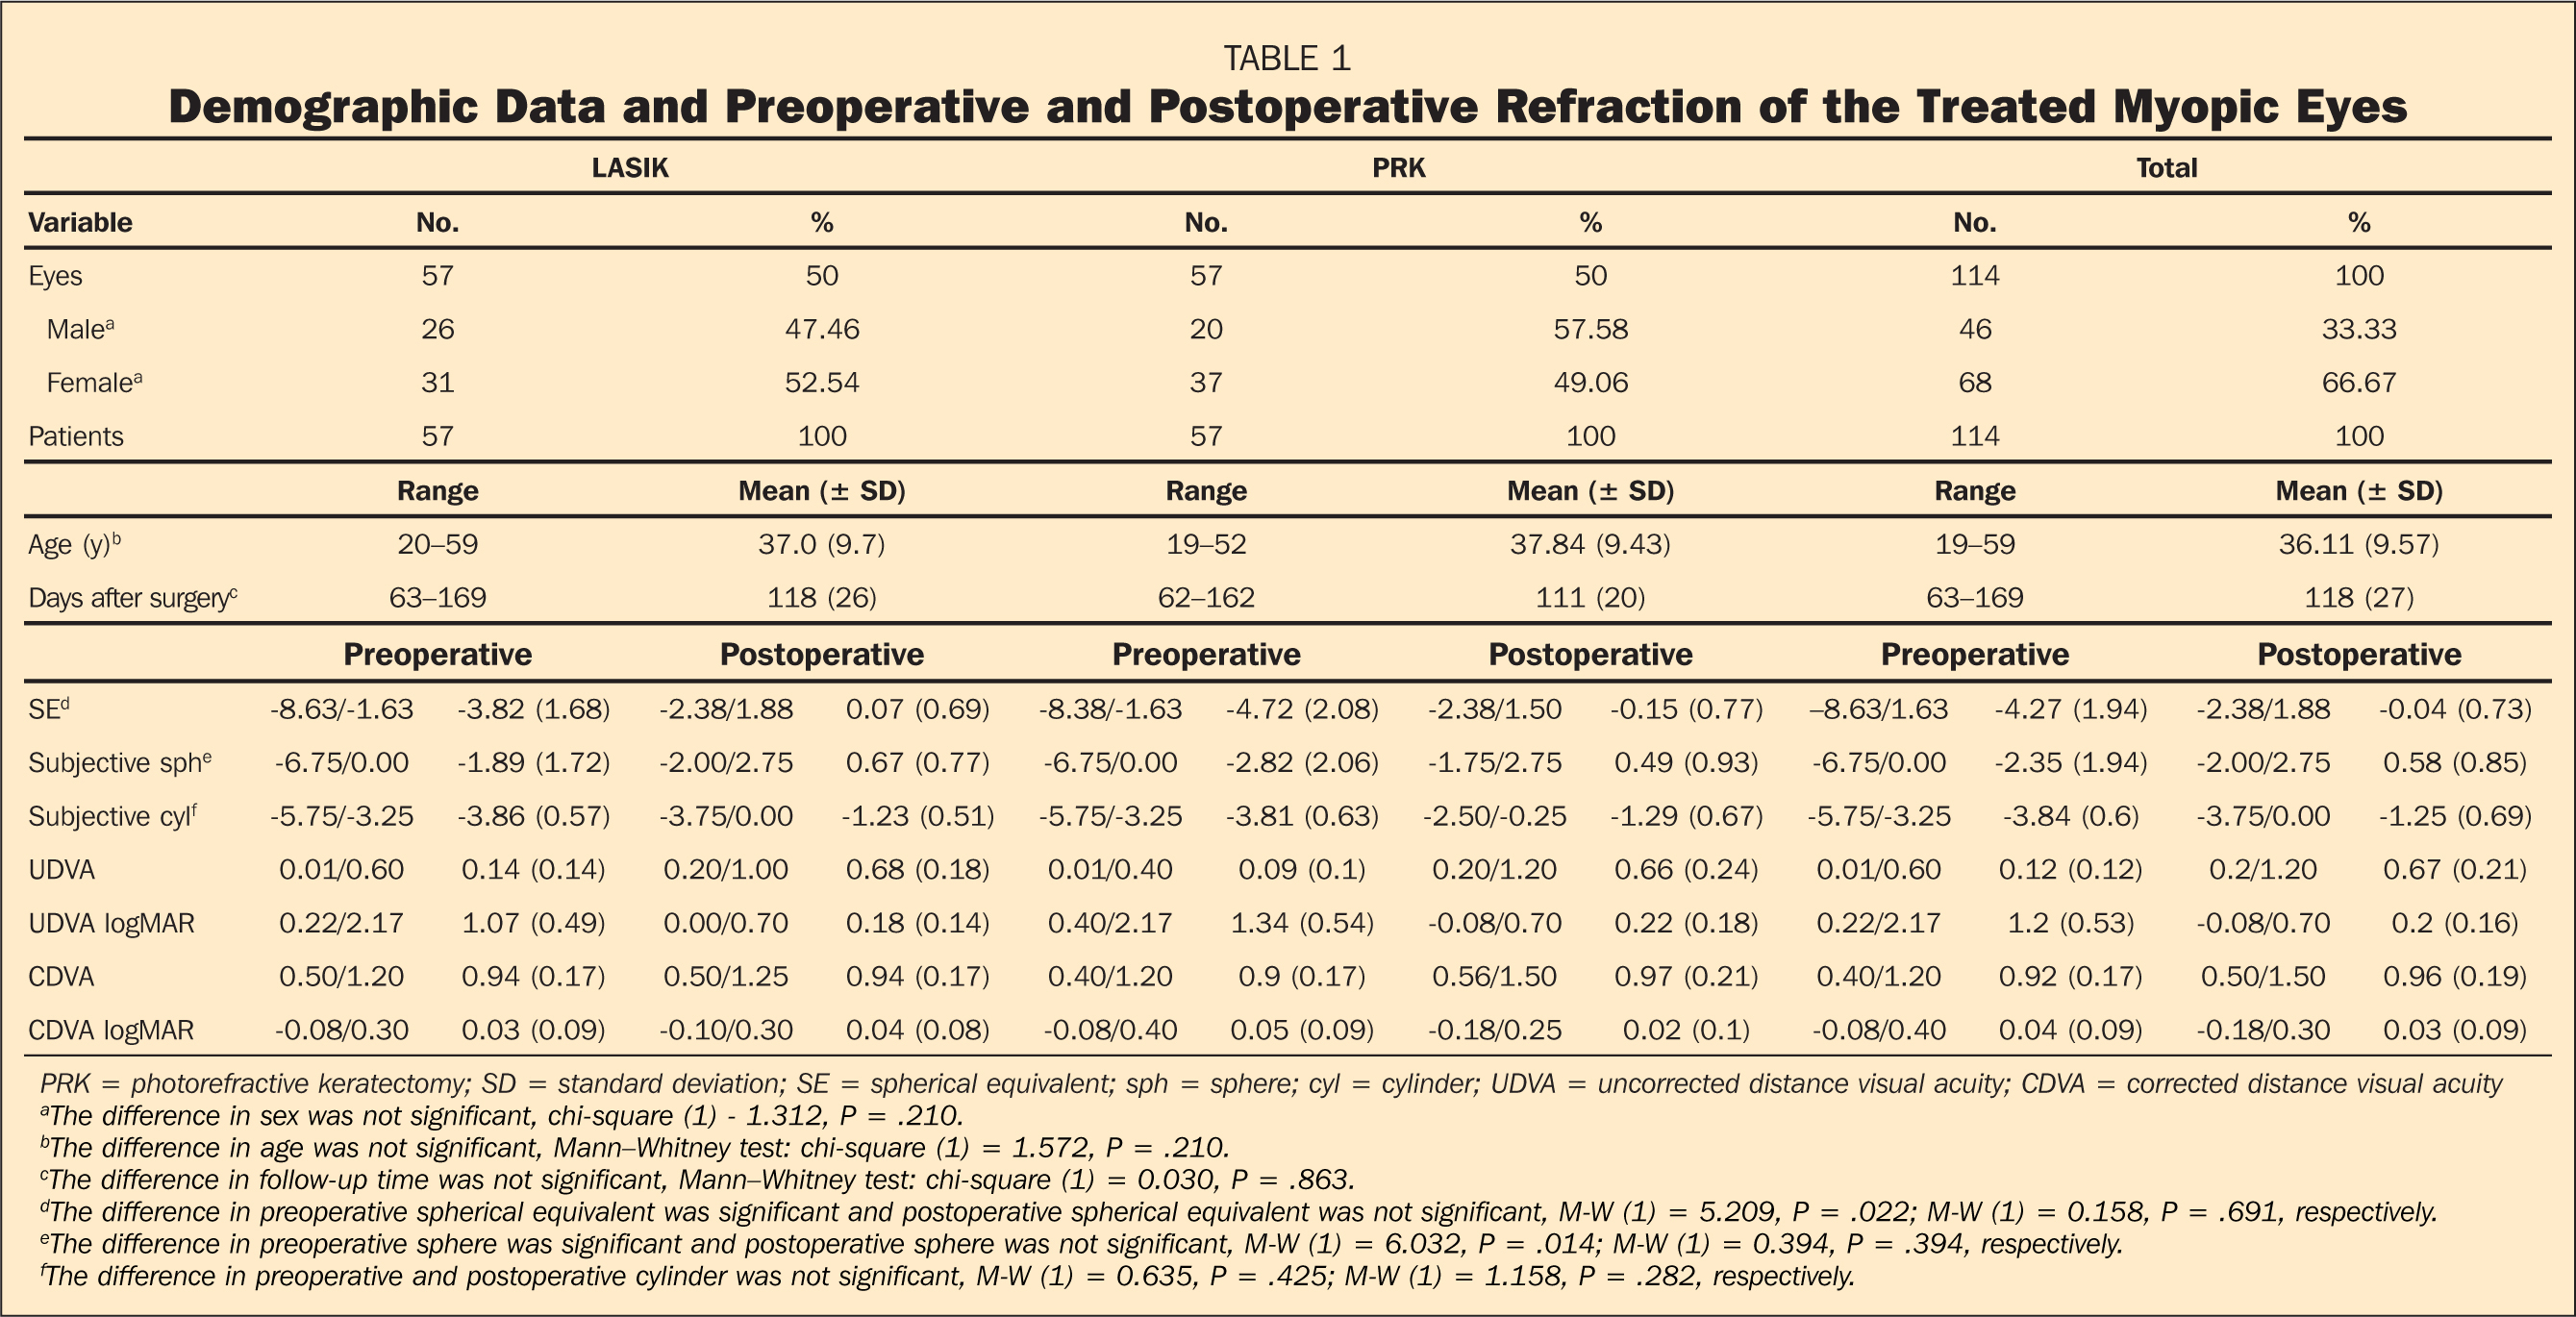 Demographic Data and Preoperative and Postoperative Refraction of the Treated Myopic Eyes